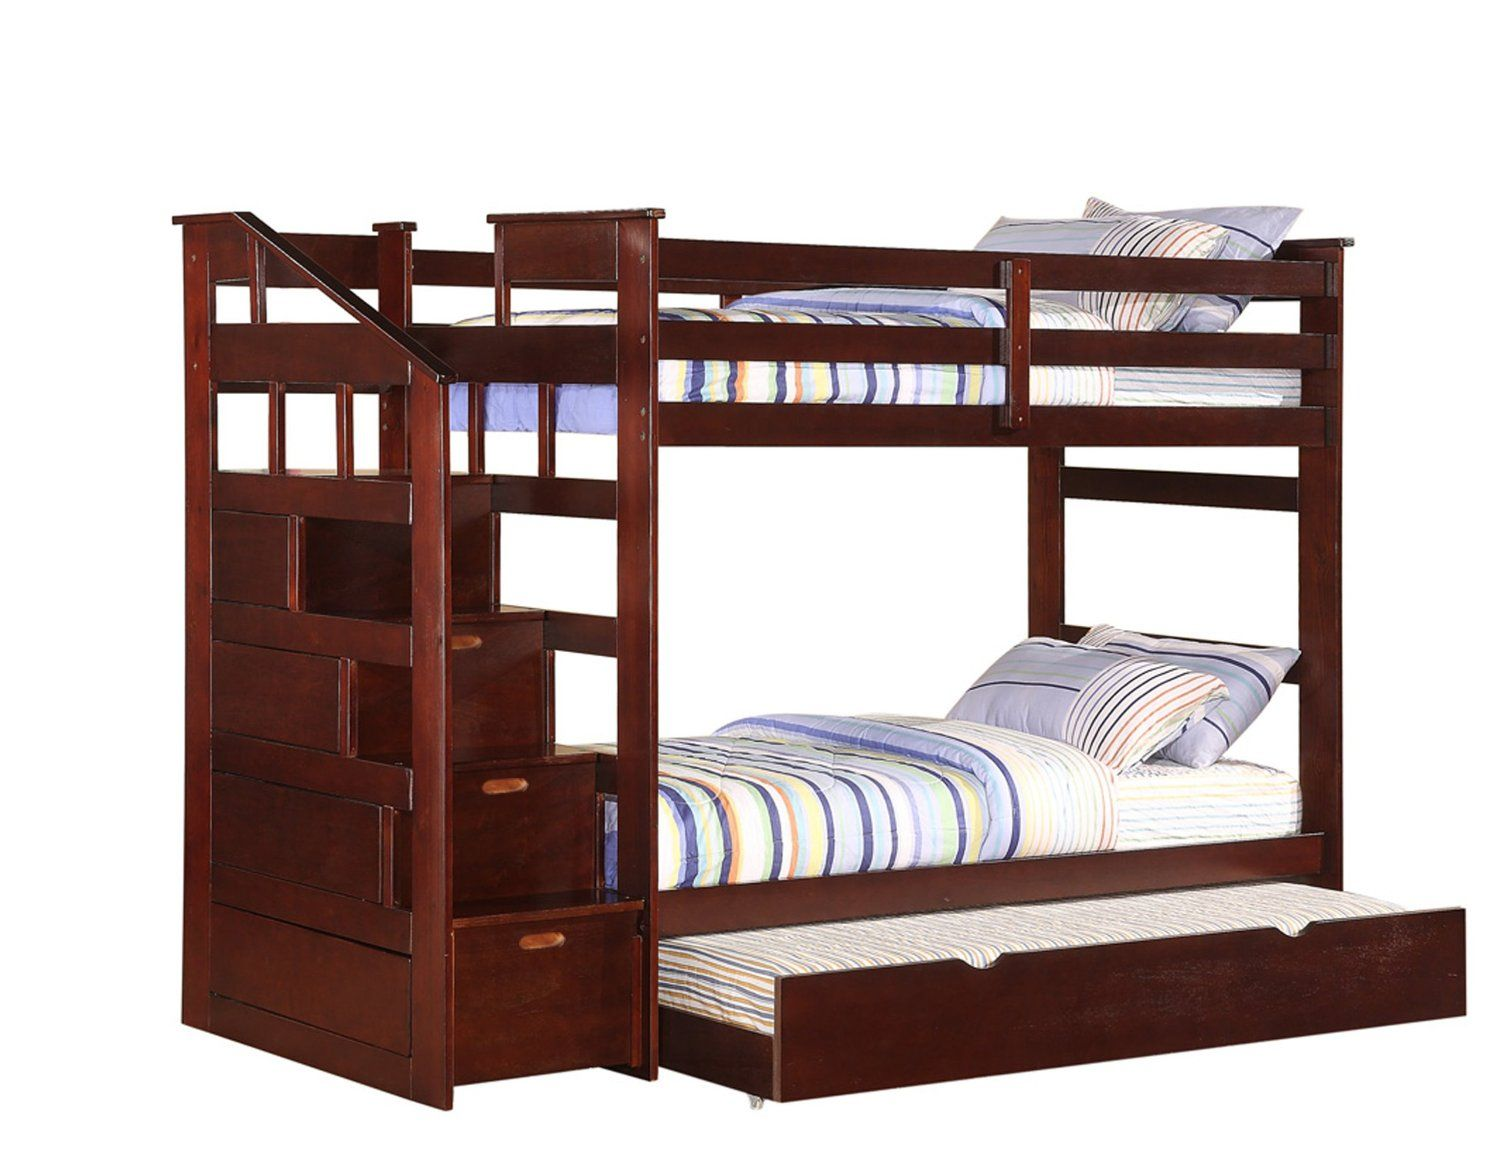 Ebay Bunk Beds For Kids What Is The Best Interior Paint Check More